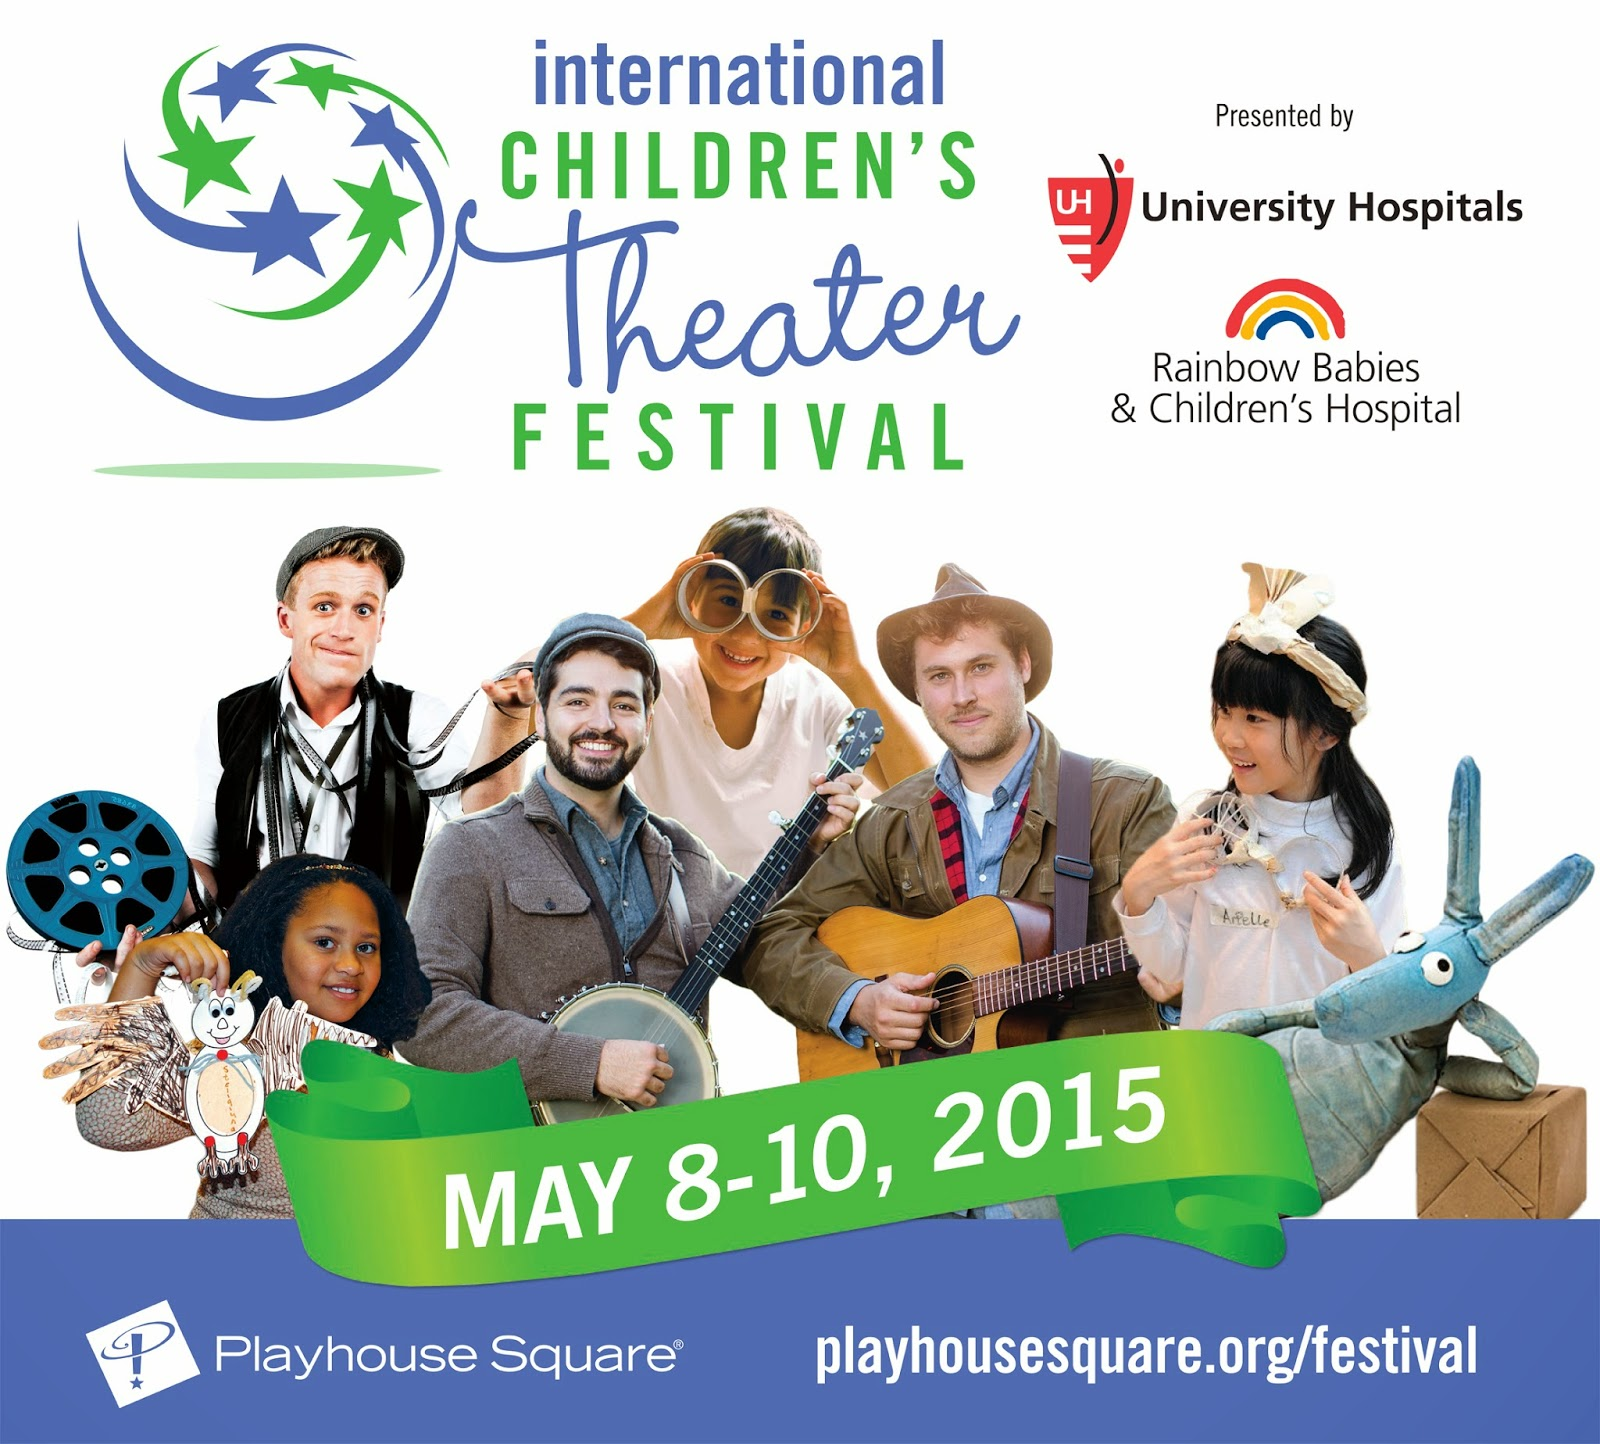 International Children's Theater at Playhouse Square May 8 - 10 - Win Tickets to See Timber!